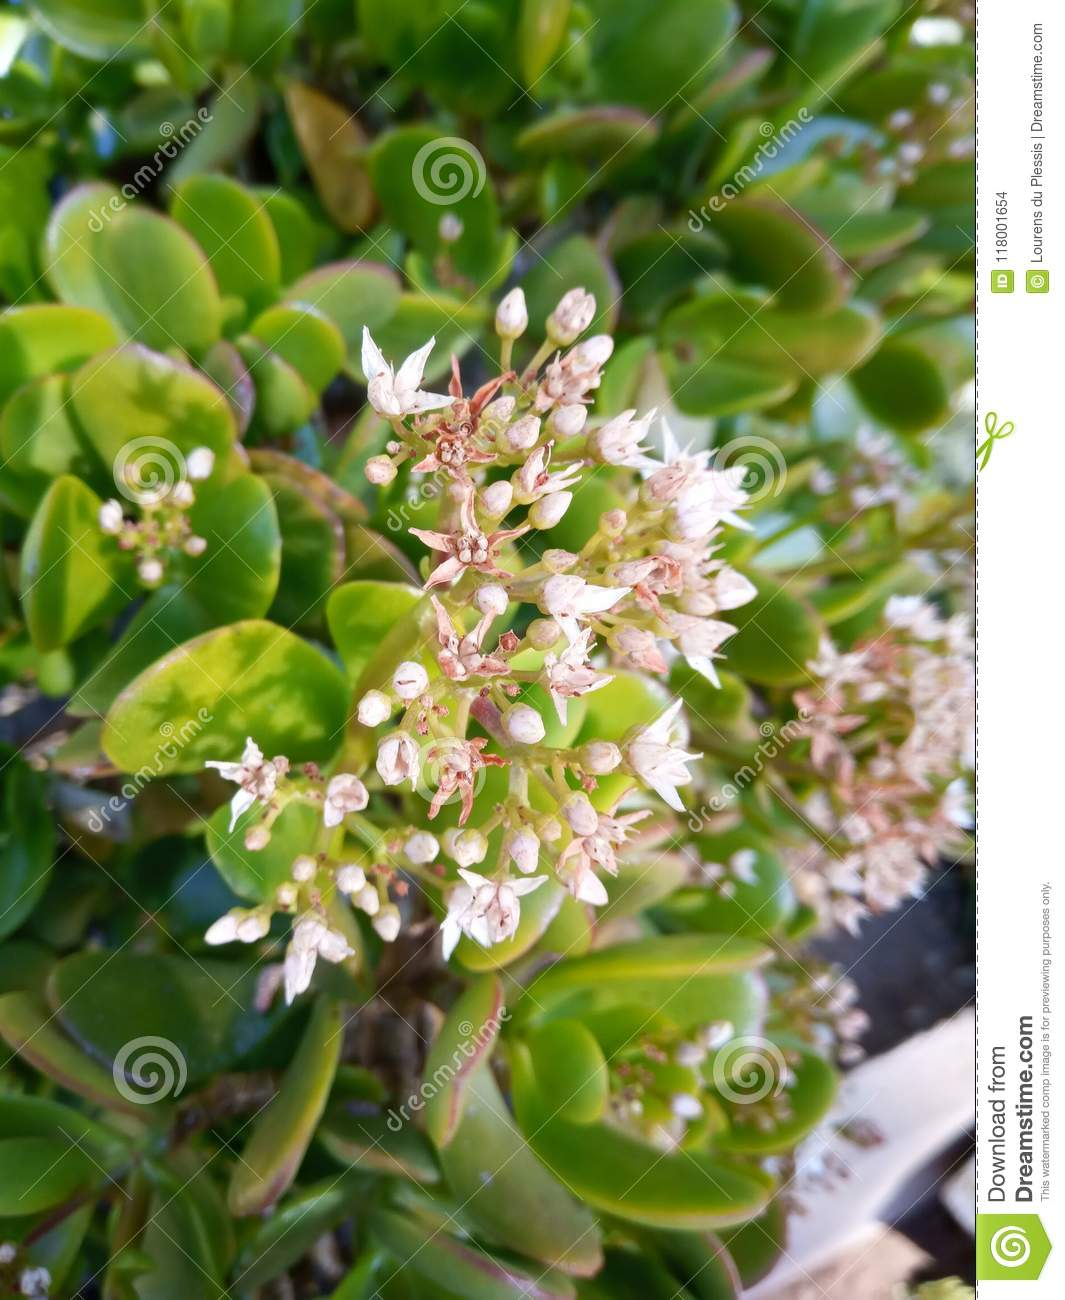 Blooming Succulent Plant Stock Photo Image Of Close 118001654